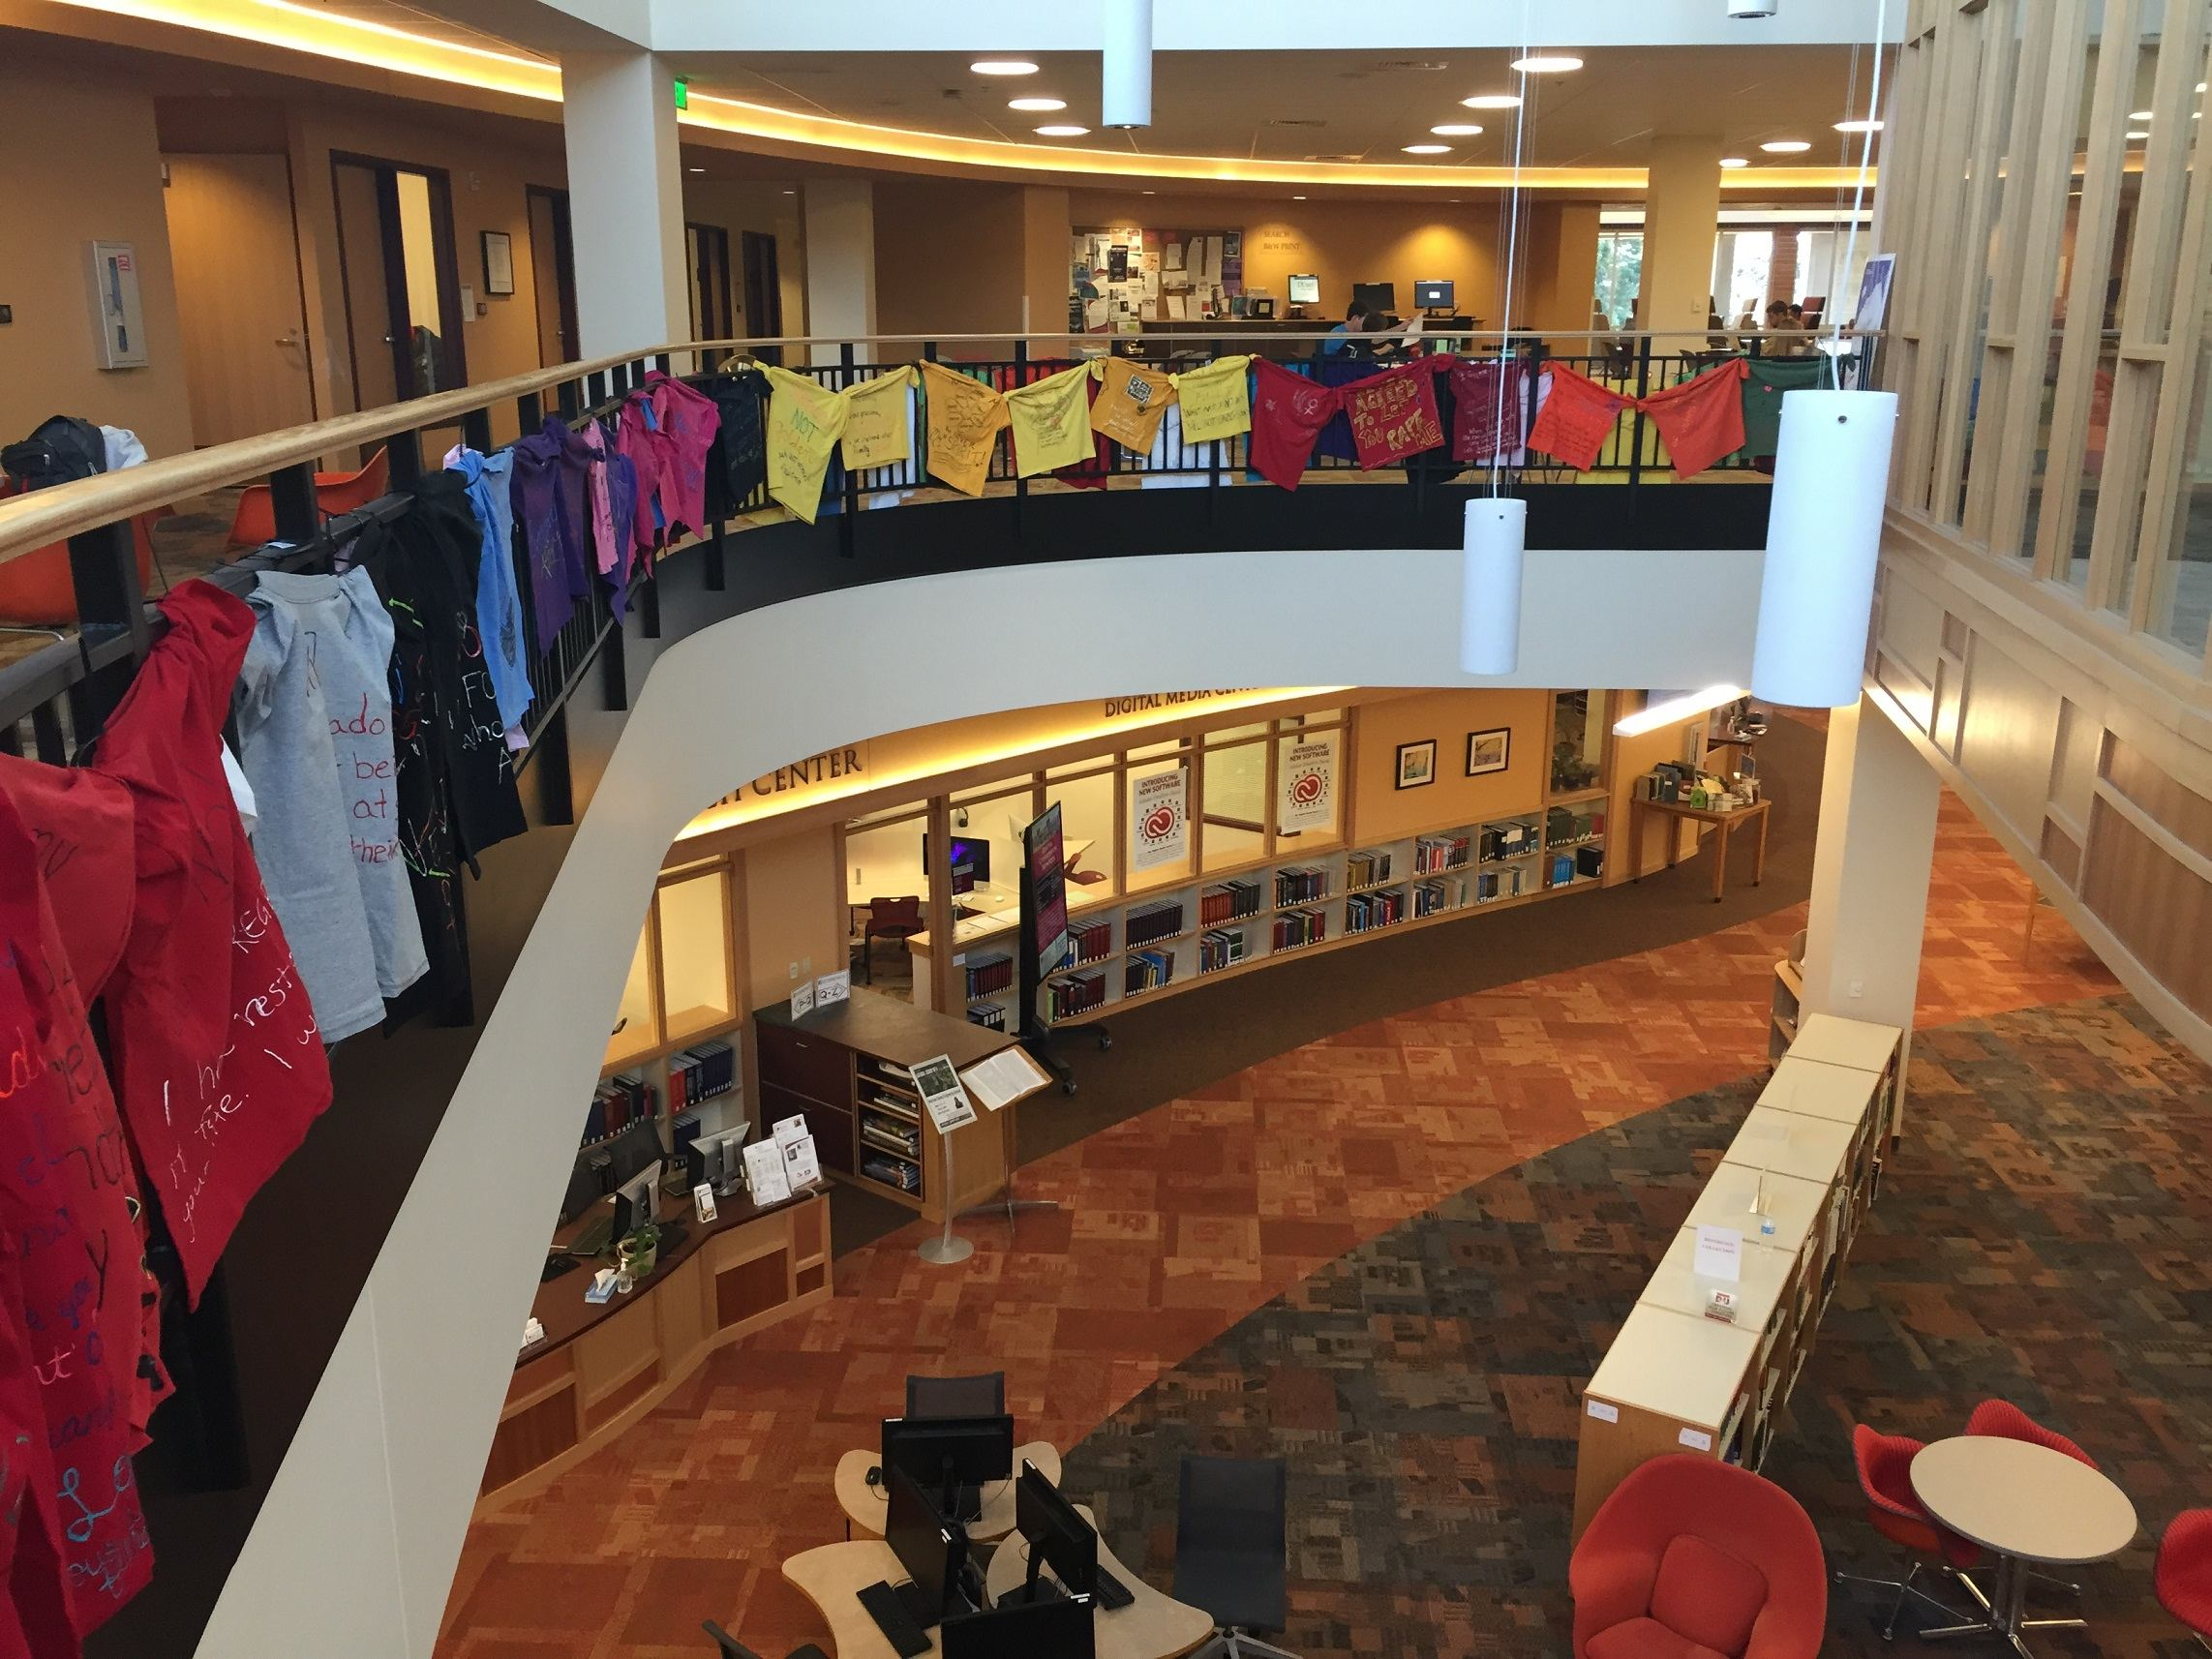 The Clothesline Project displayed in the Anderson Academic Commons. Photo courtesy of Connor W. Davis.